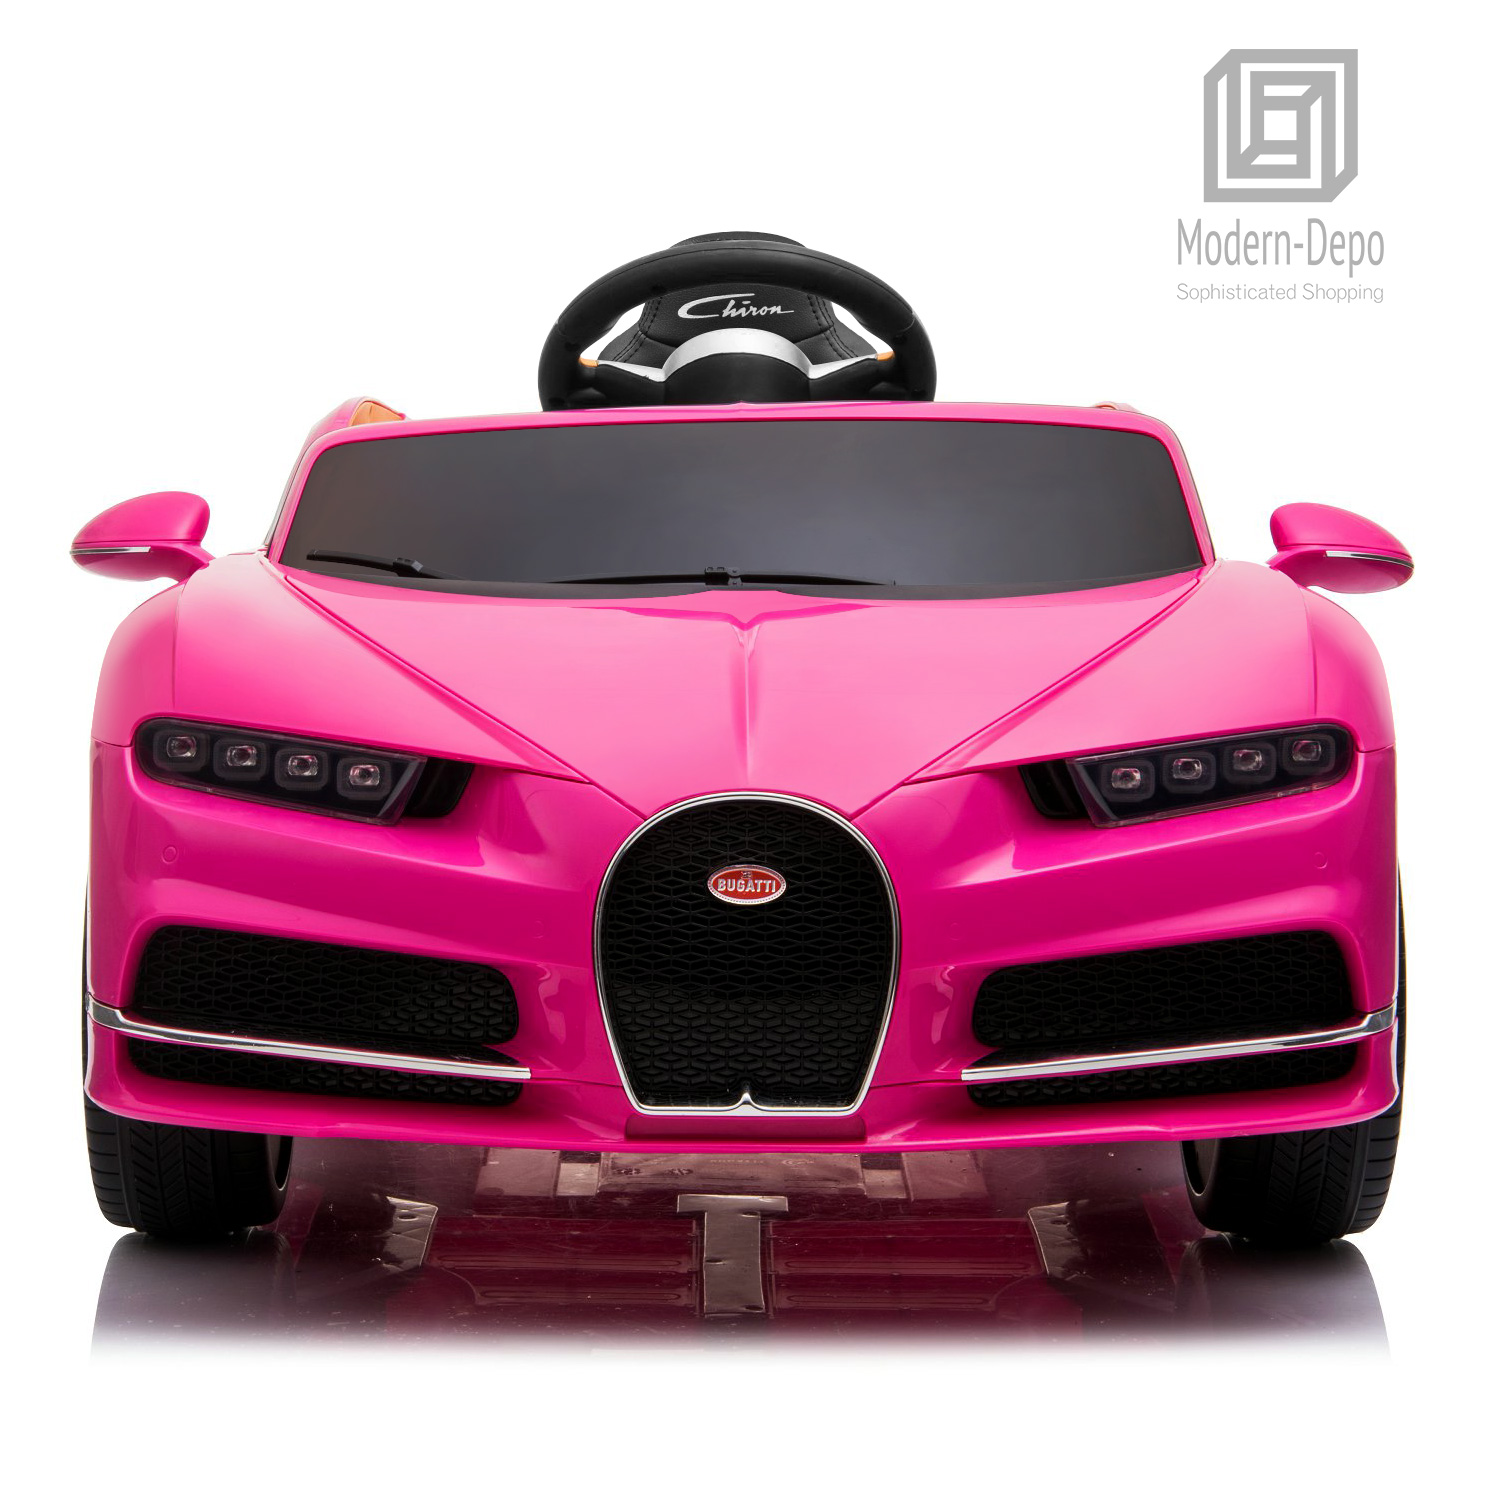 Bugatti-Chiron-12V-Kids-Ride-On-Car-with-Remote-Control-High-Speed-Motor miniature 23